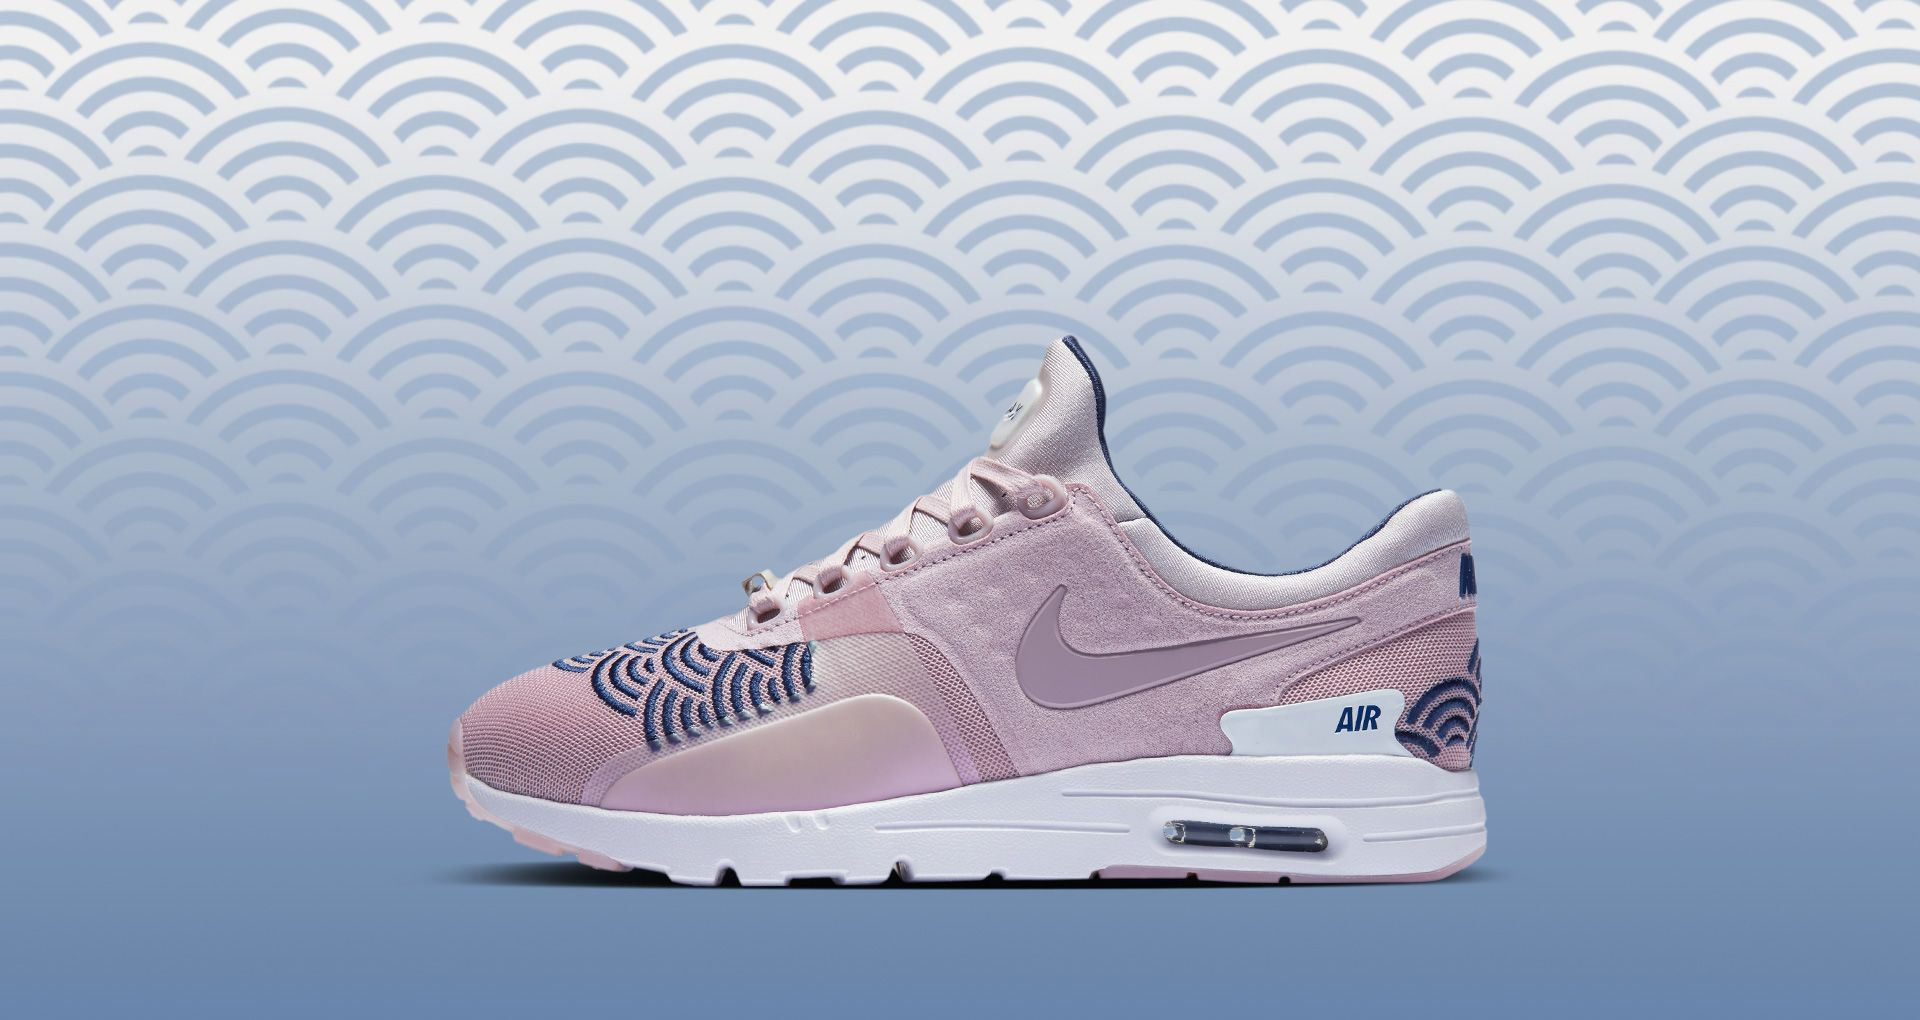 9bc419a3d8 Women's Nike Air Max Zero 'Tokyo' Release Date. Nike⁠+ SNKRS